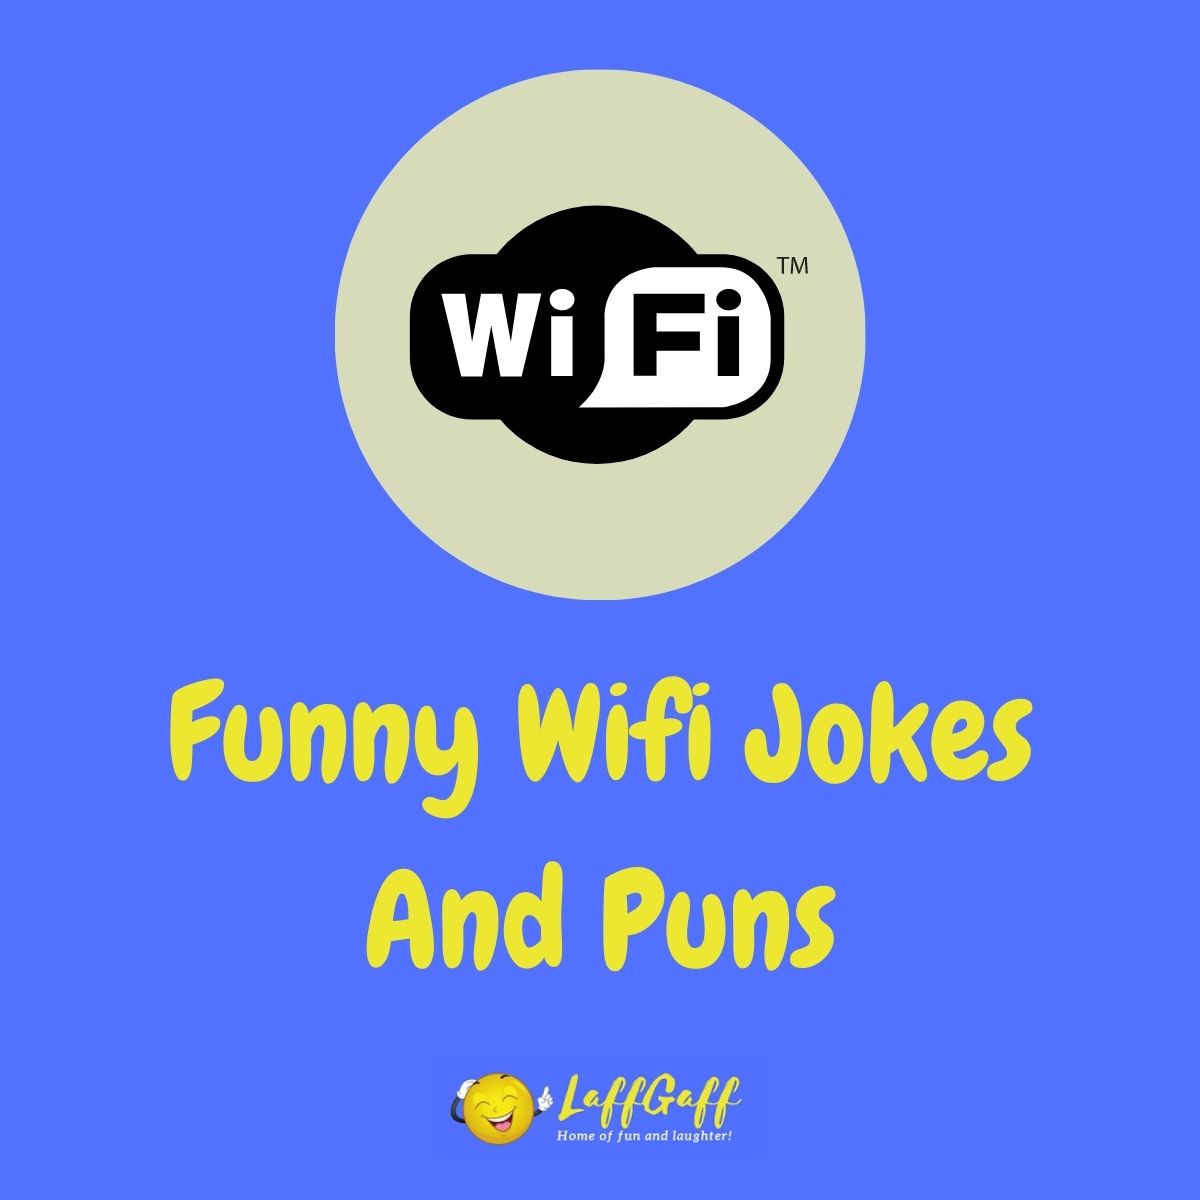 Featured image for a page of funny wifi jokes and puns.